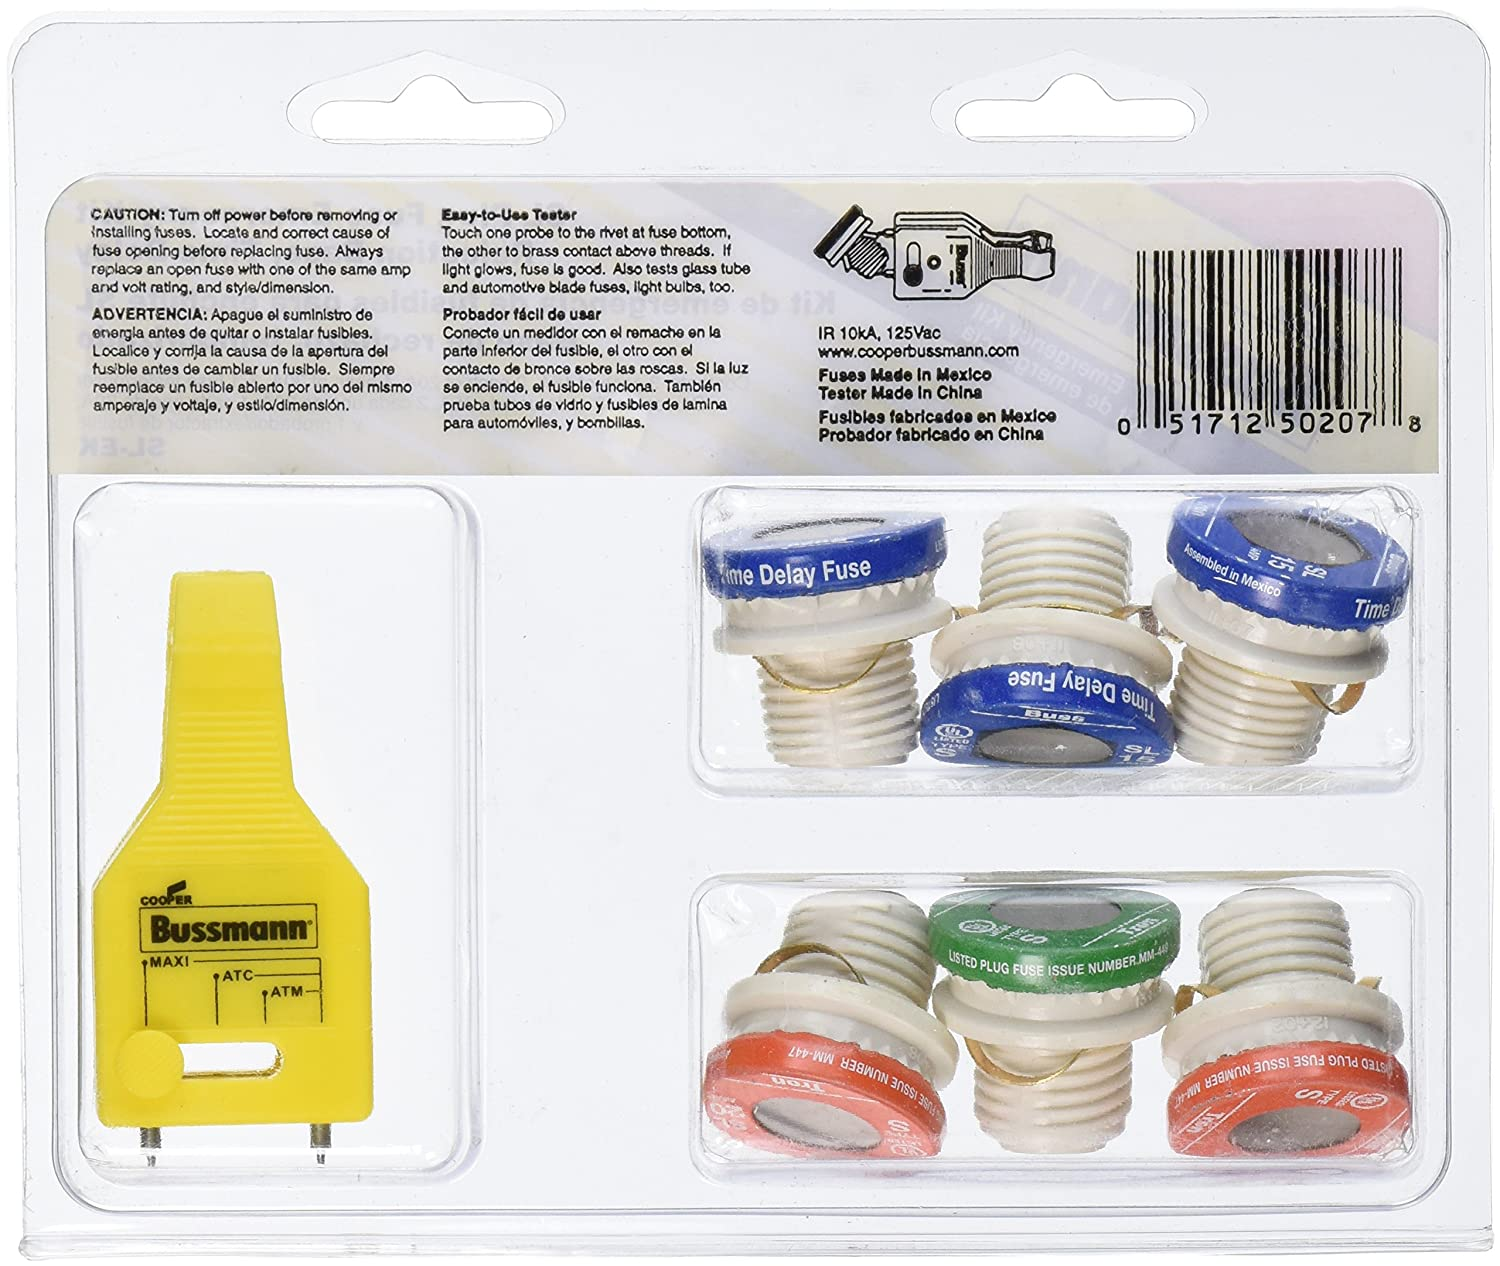 Bussmann SL-EK SL Fuse Assortment Contains 3 Ea. SL-15, 2 Ea. SL-20 And 1 Ea. SL-30 And 1 Fuse Tester, 6-Pack plus Tester - Cartridge Fuses - Amazon.com